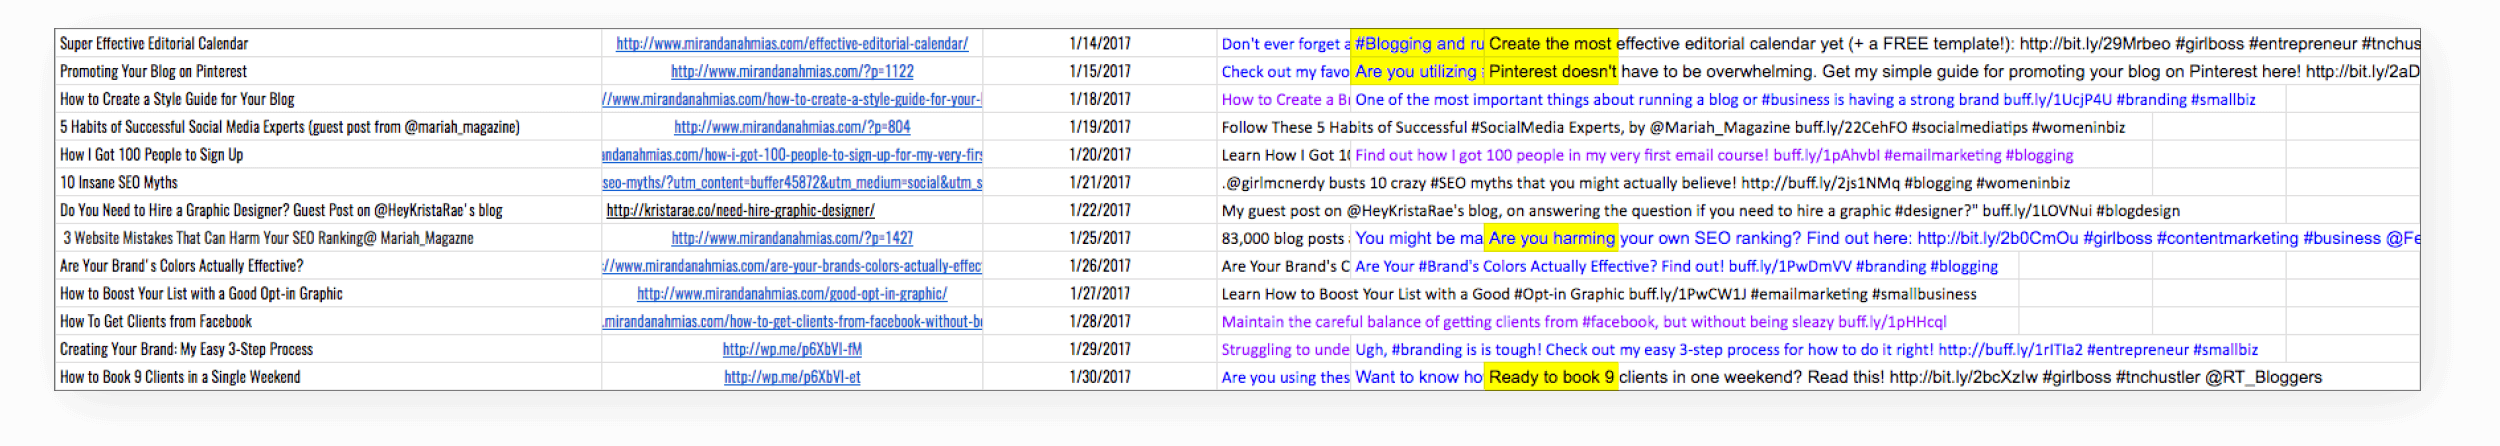 how-to-promote-your-blog-twitter-spreadsheet